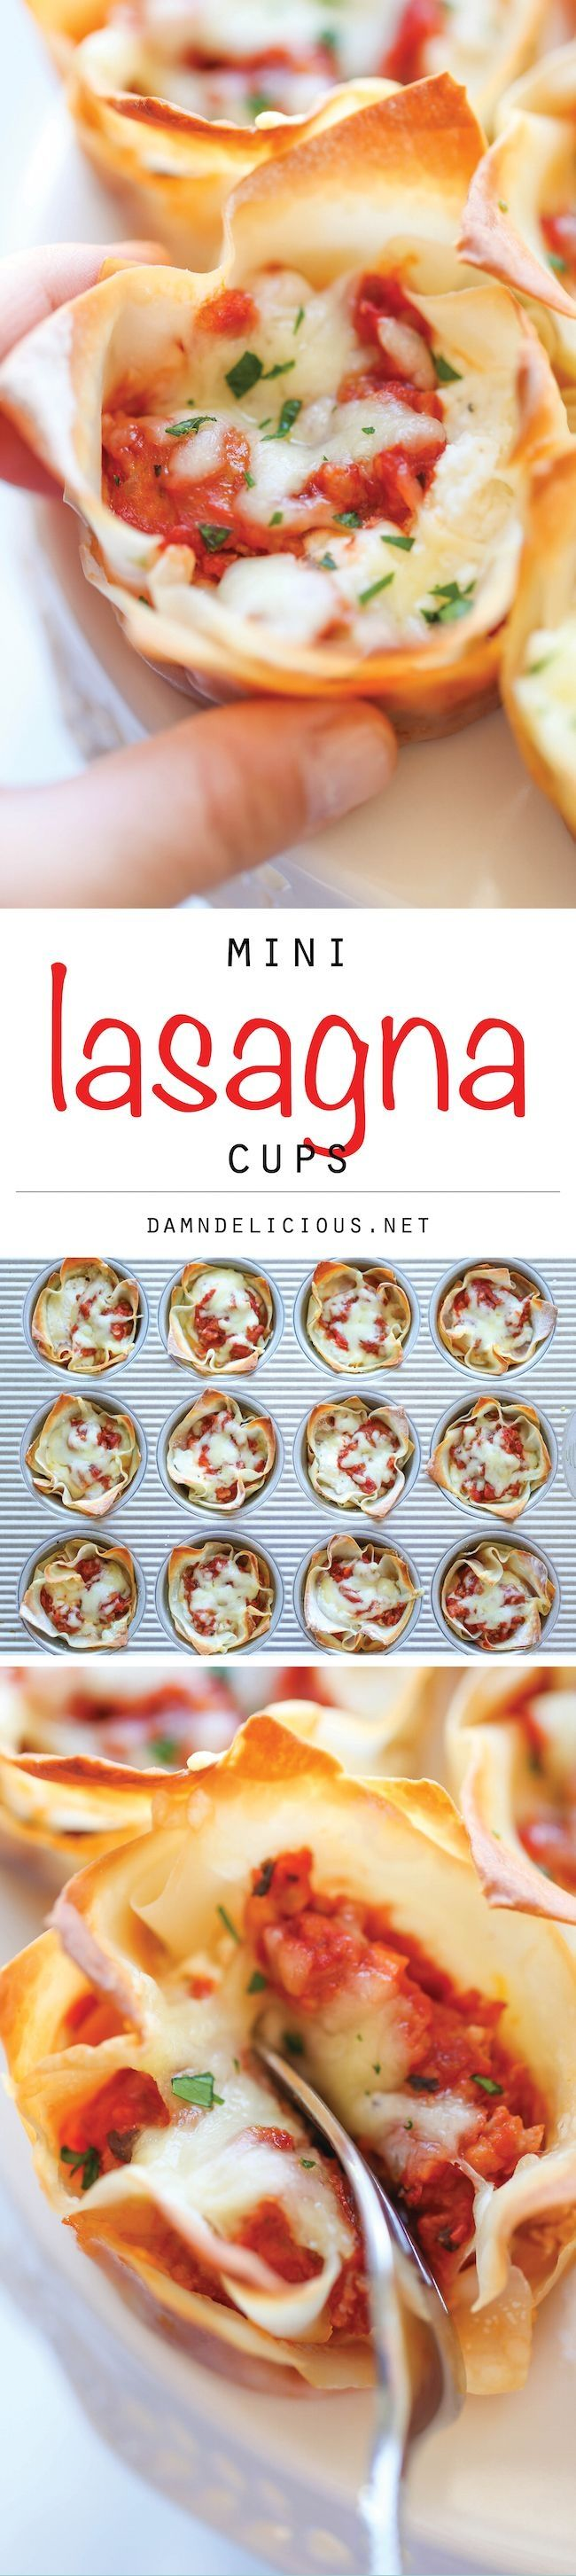 Mini Lasagna Cups | #Cups #Lasagna #Mini